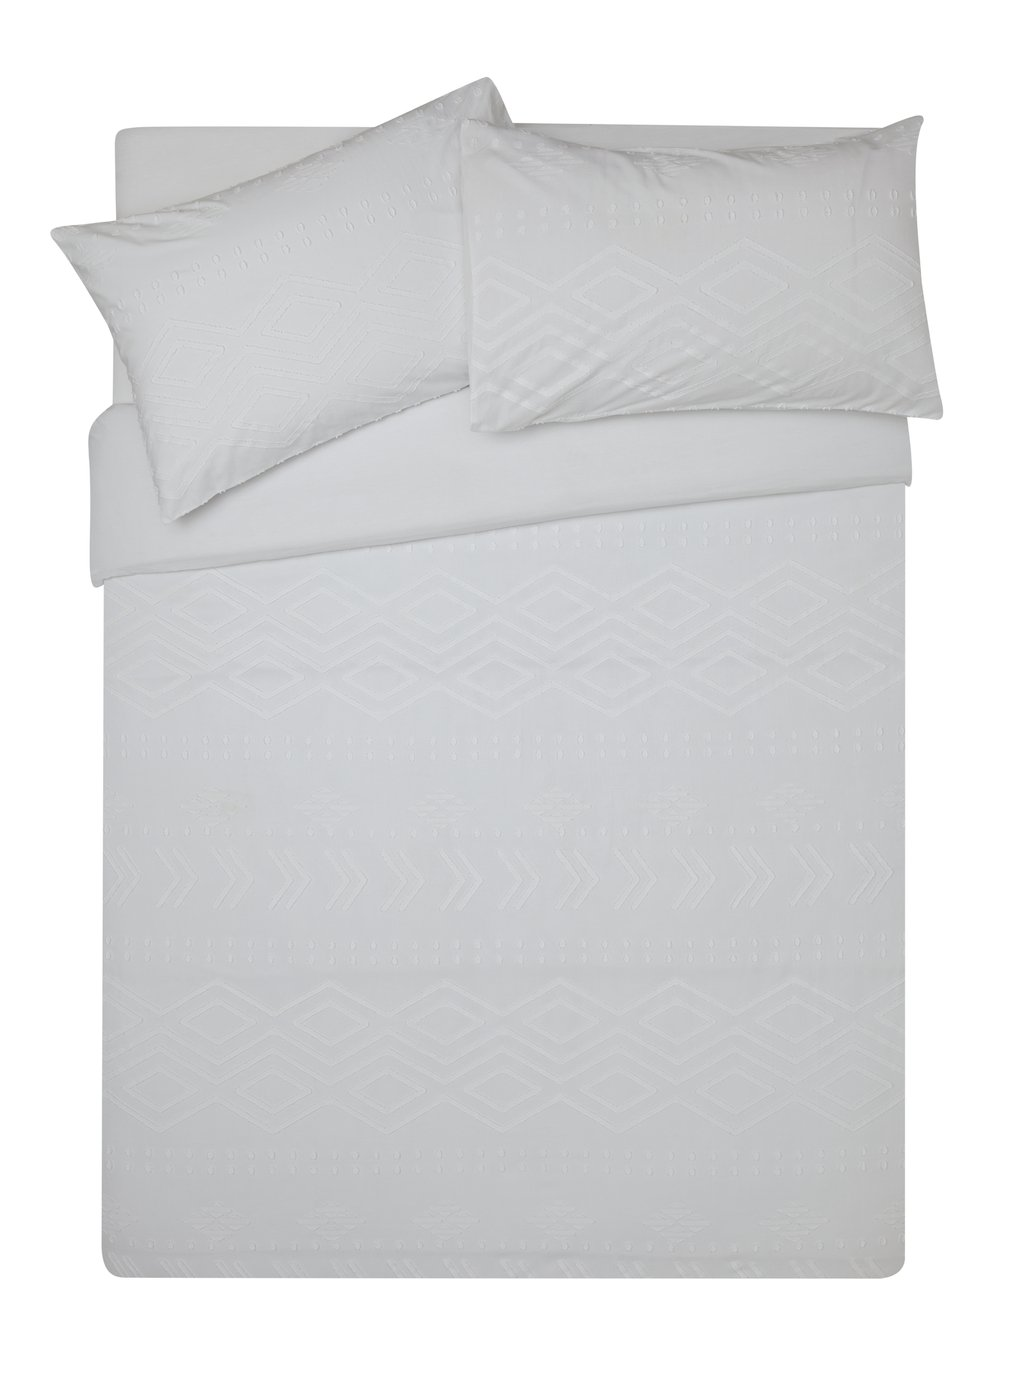 Argos Home Diamond Jacquard Bedding Set - Superking